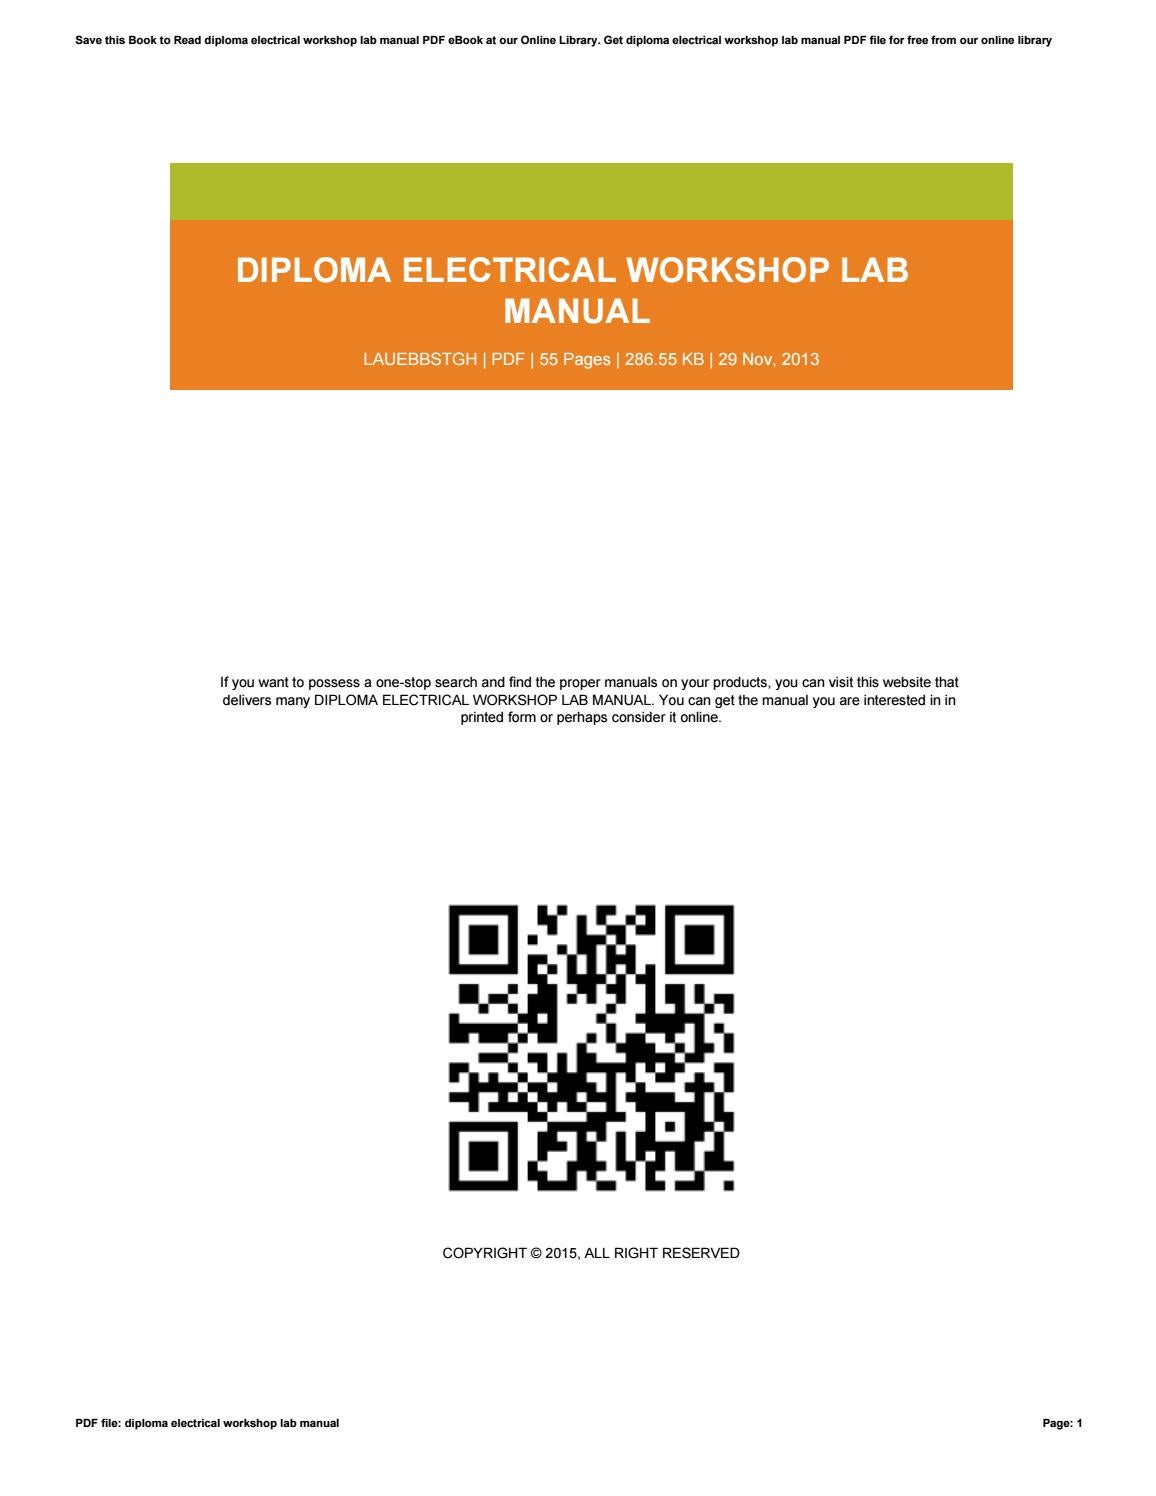 Fantastic electrical installation tutorial pdf embellishment best diploma electrical workshop lab manual by maxinecasiano4589 issuu fandeluxe Gallery